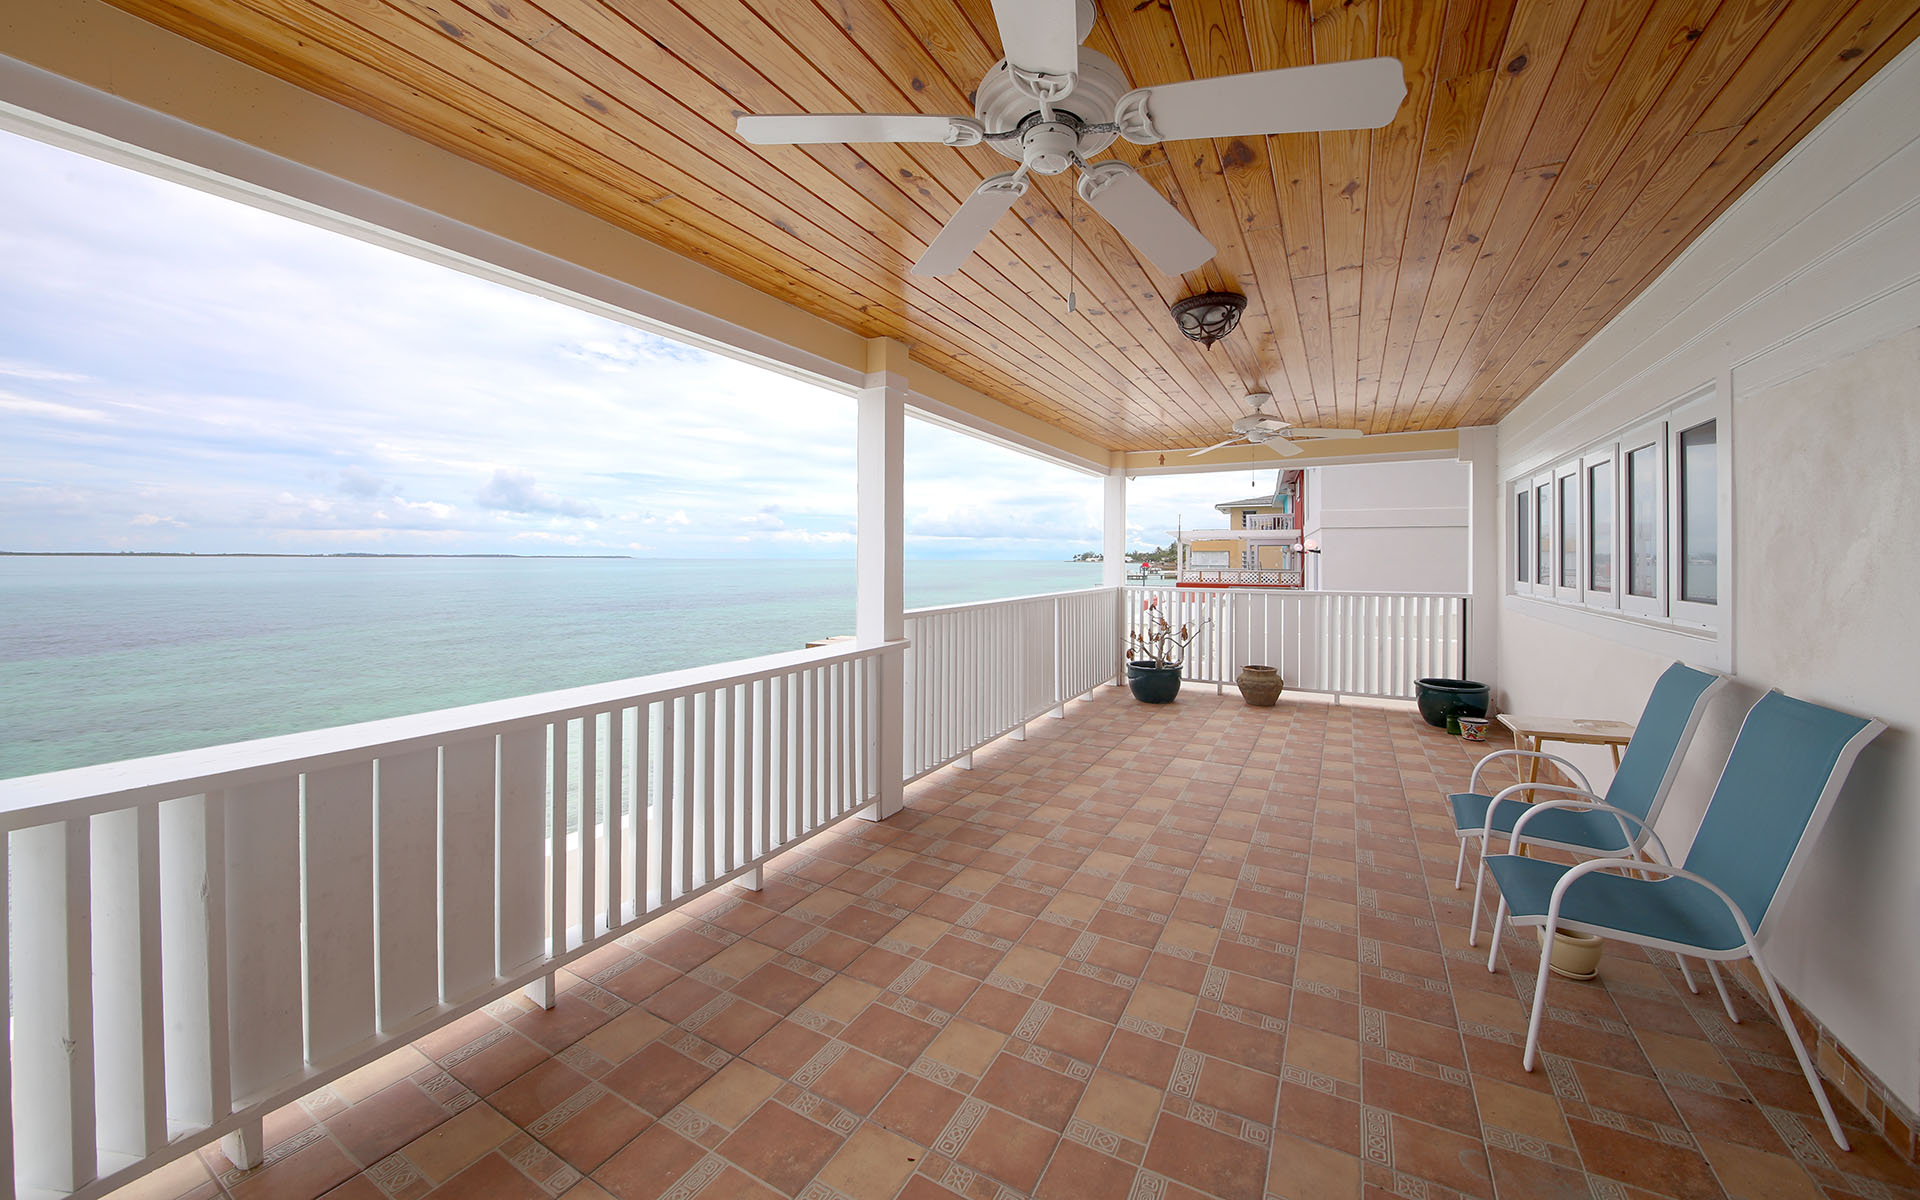 Single Family Home for Rent at Waterfront Gem on Eastern Road - MLS 31552 Eastern Road, Nassau And Paradise Island, Bahamas